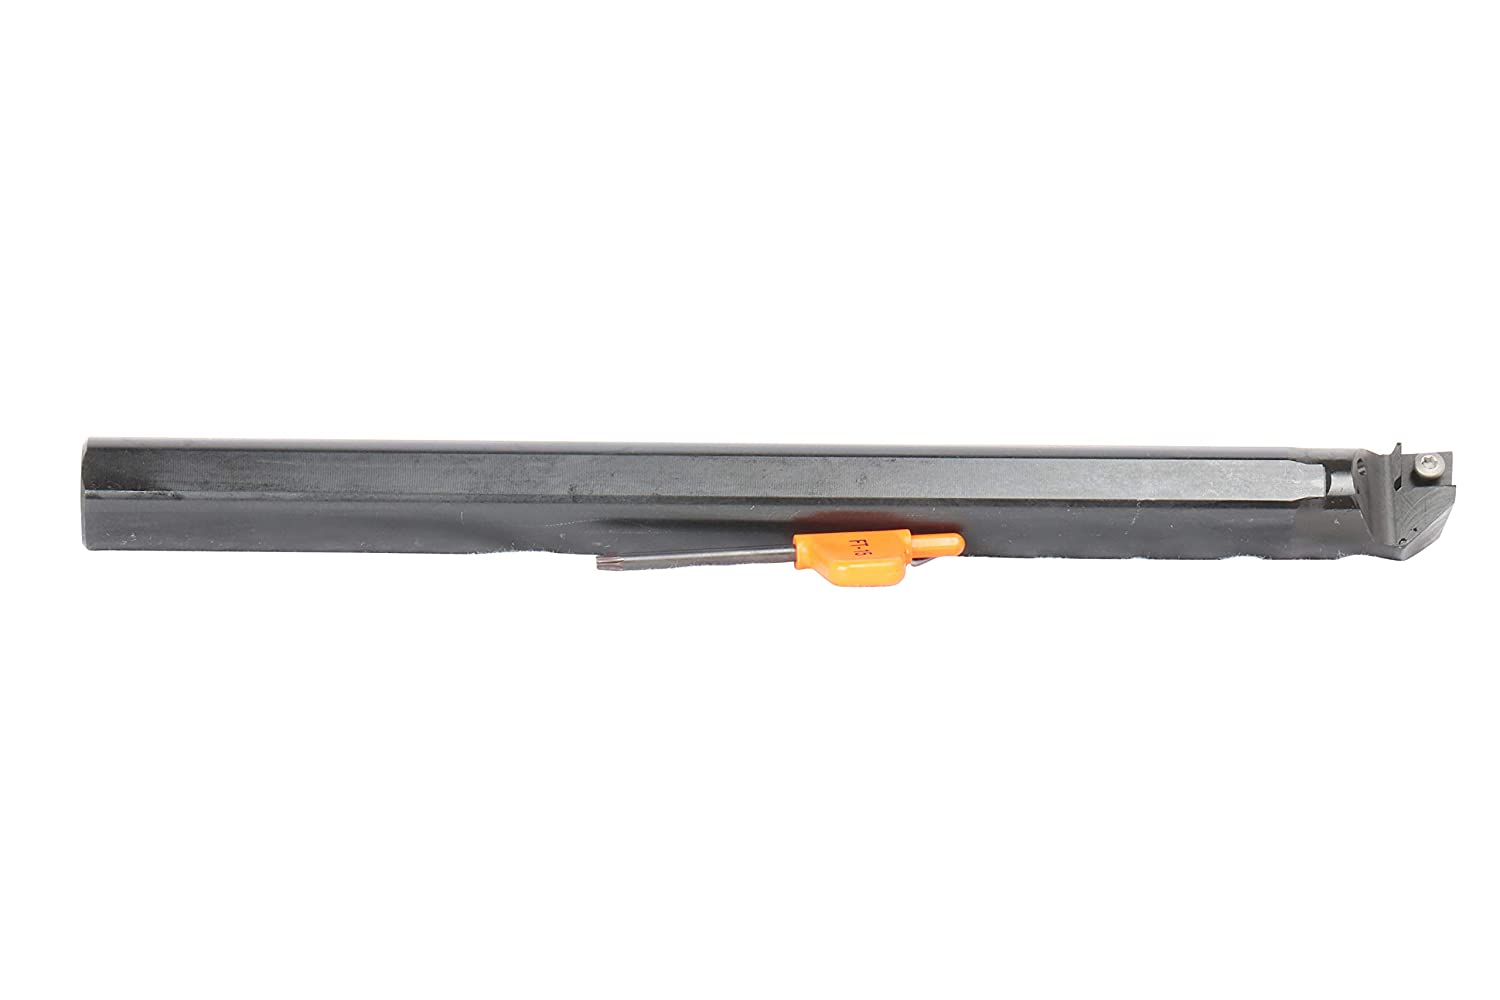 Right Steel 300mm Length WIDIA A25TSCLCR12 A-SCLC S-Style Clamping Boring Bar for Positive Inserts 95/° Angle 25mm Shank Diameter